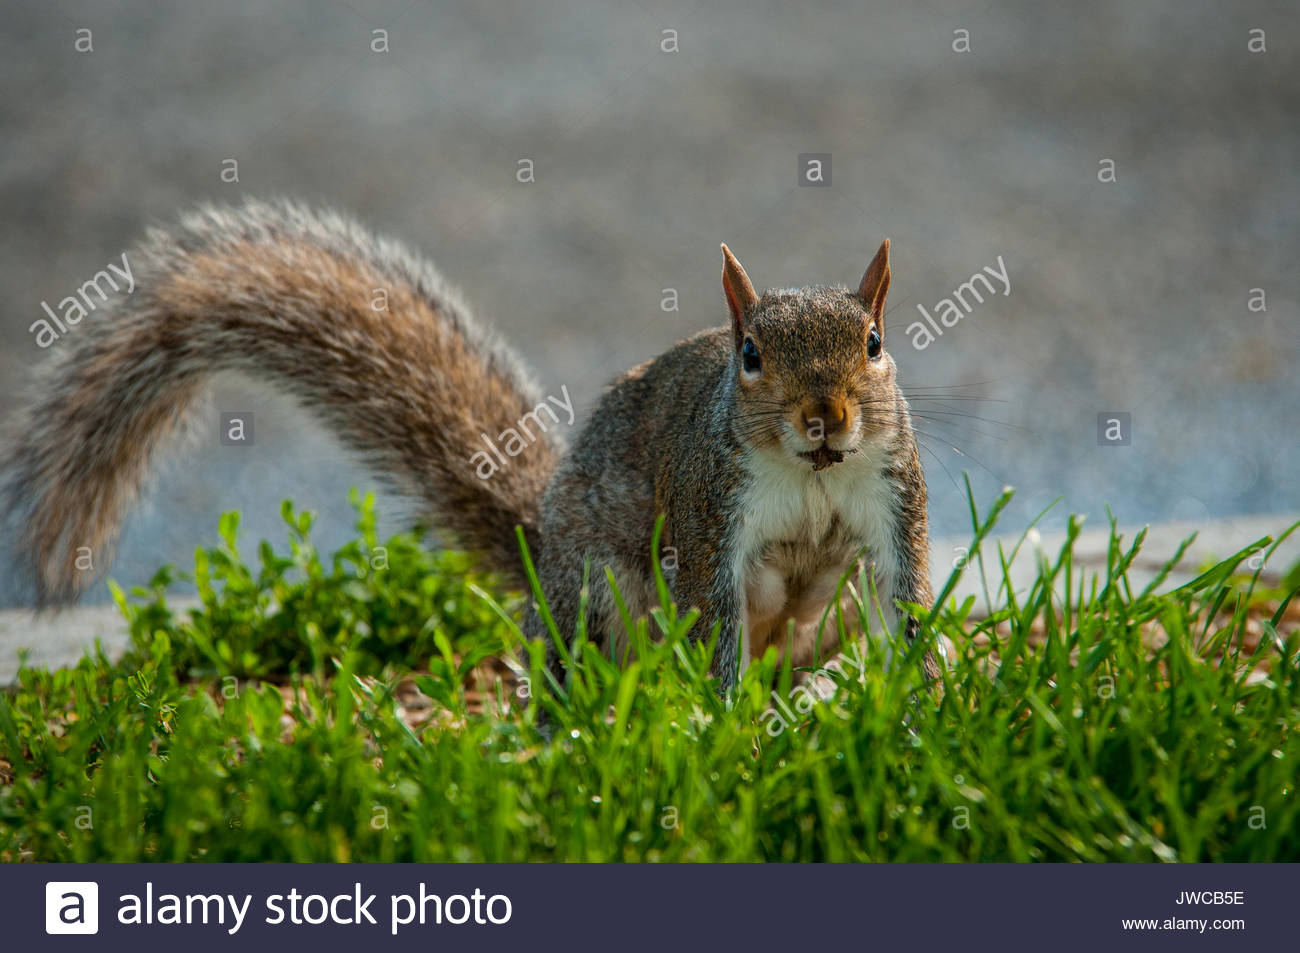 Portrait of an Eastern grey squirrel. - Stock Image